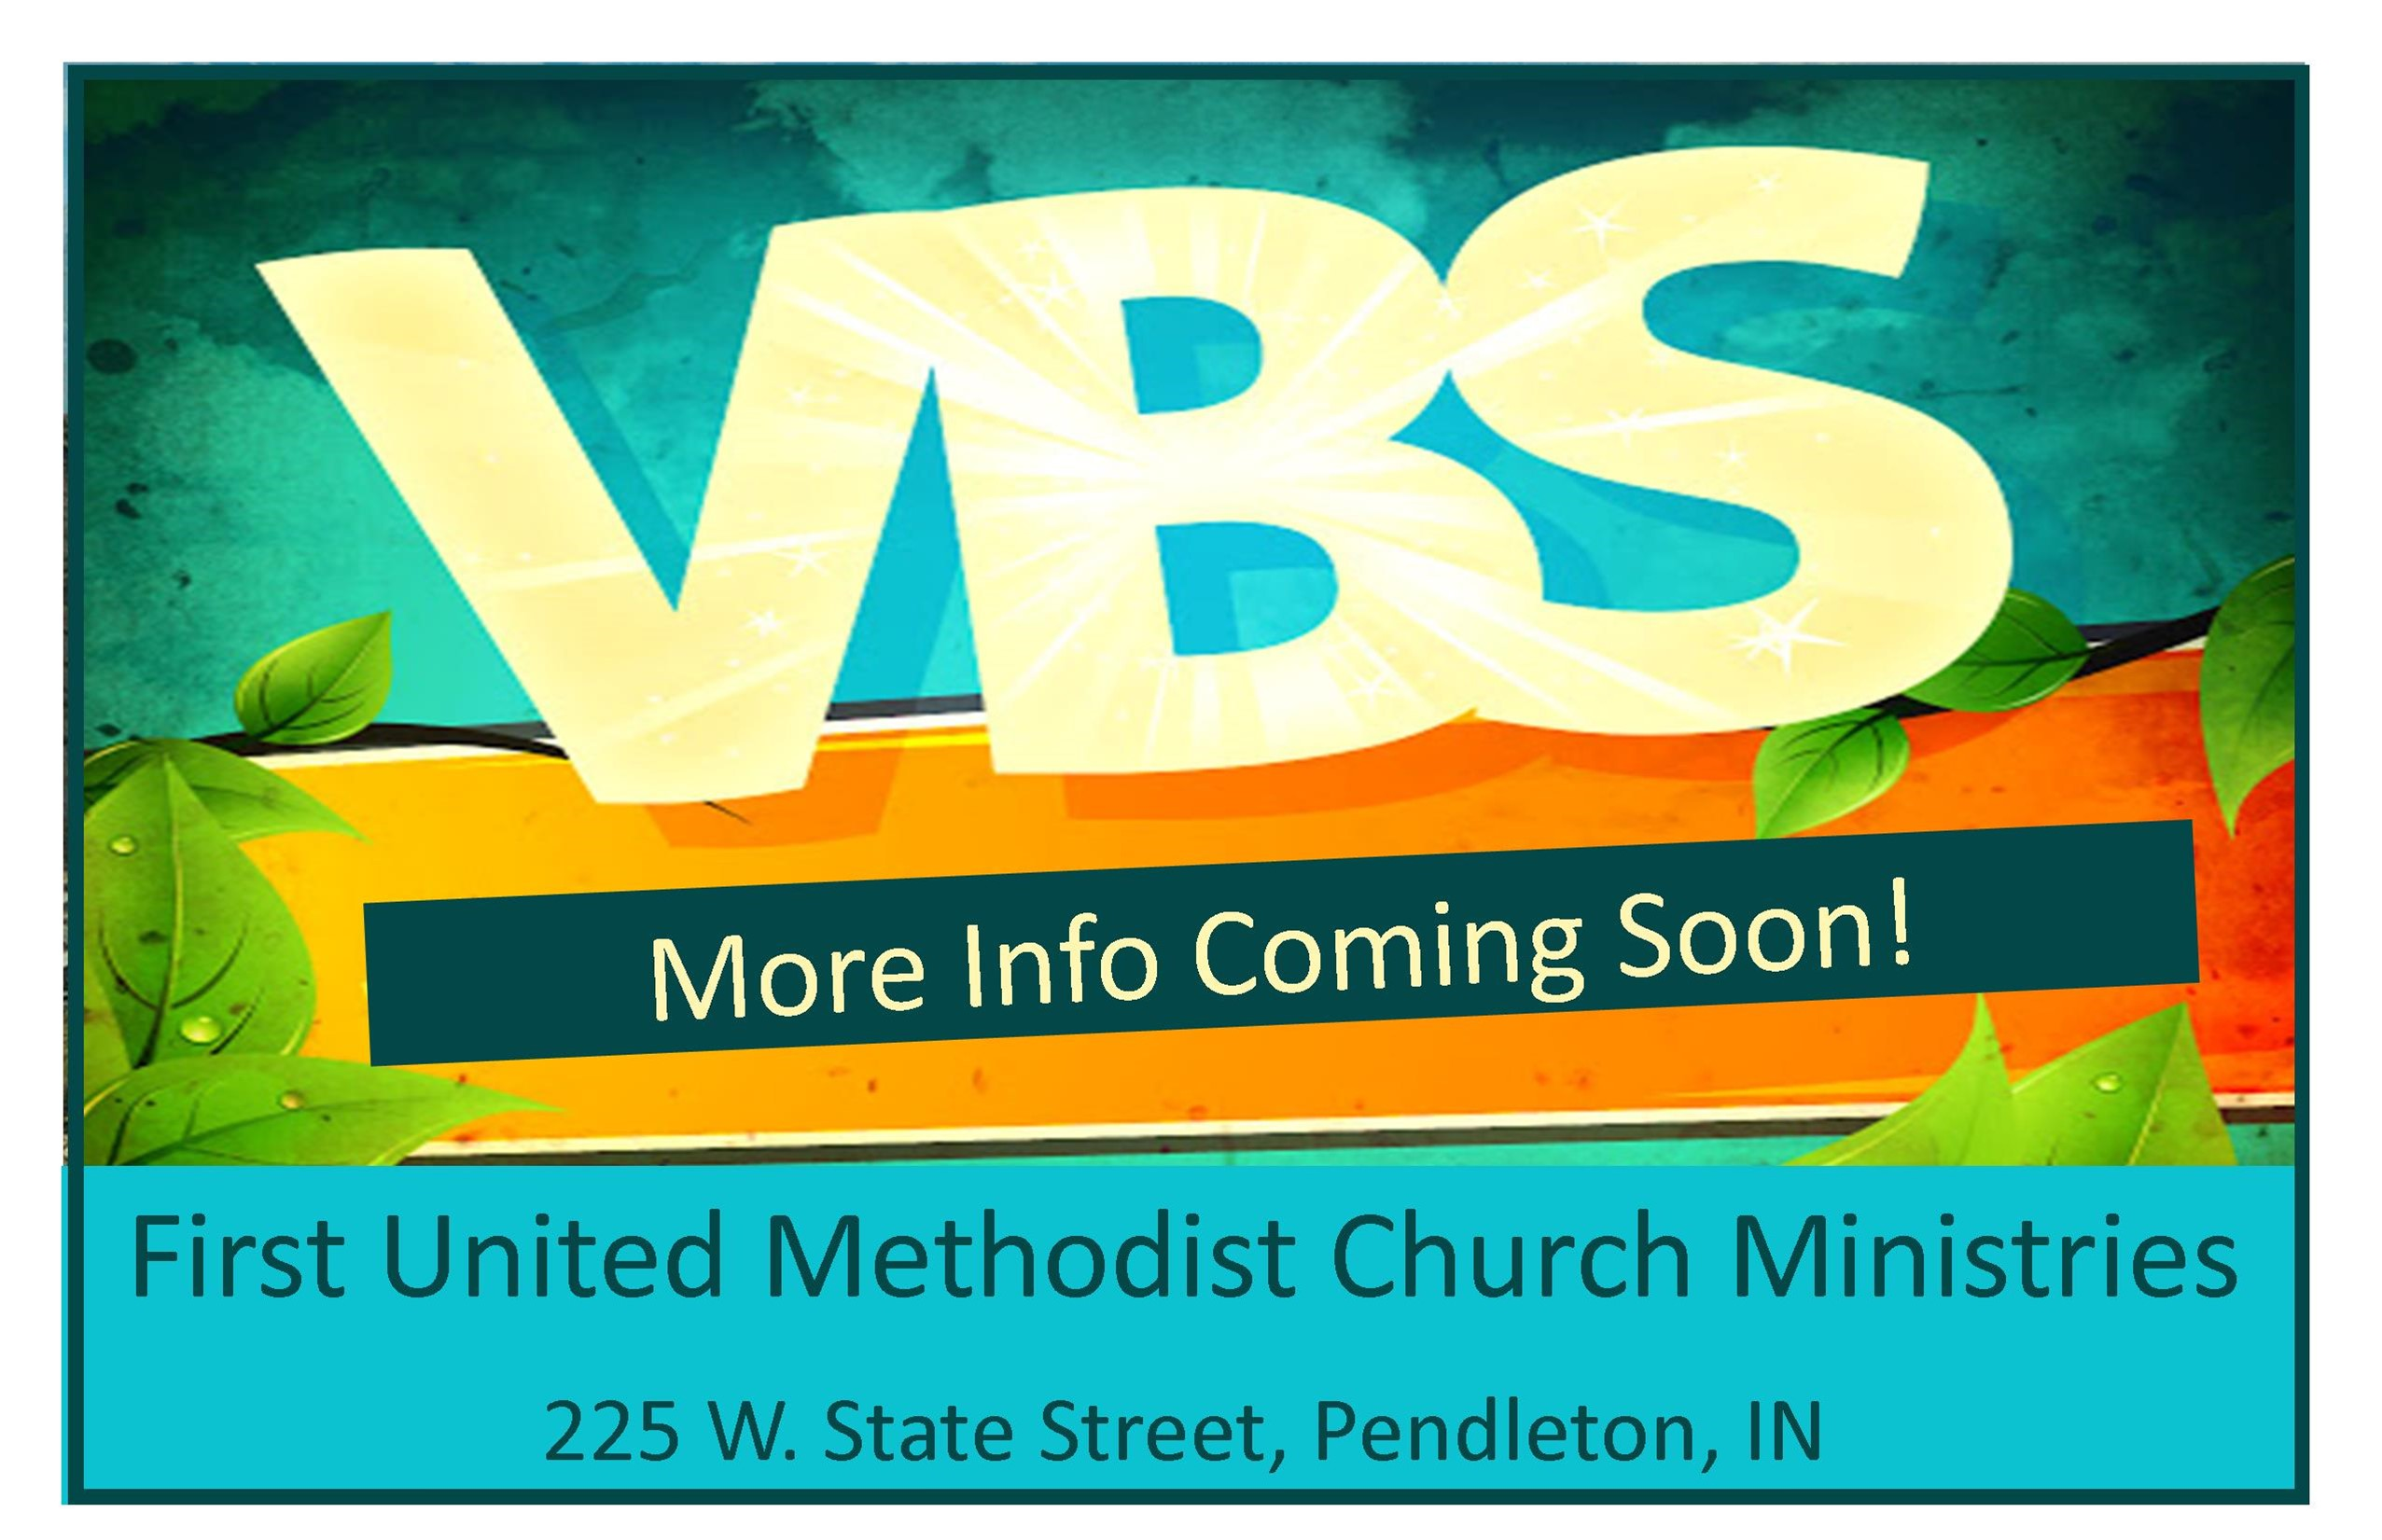 VBS Information Coming Soon